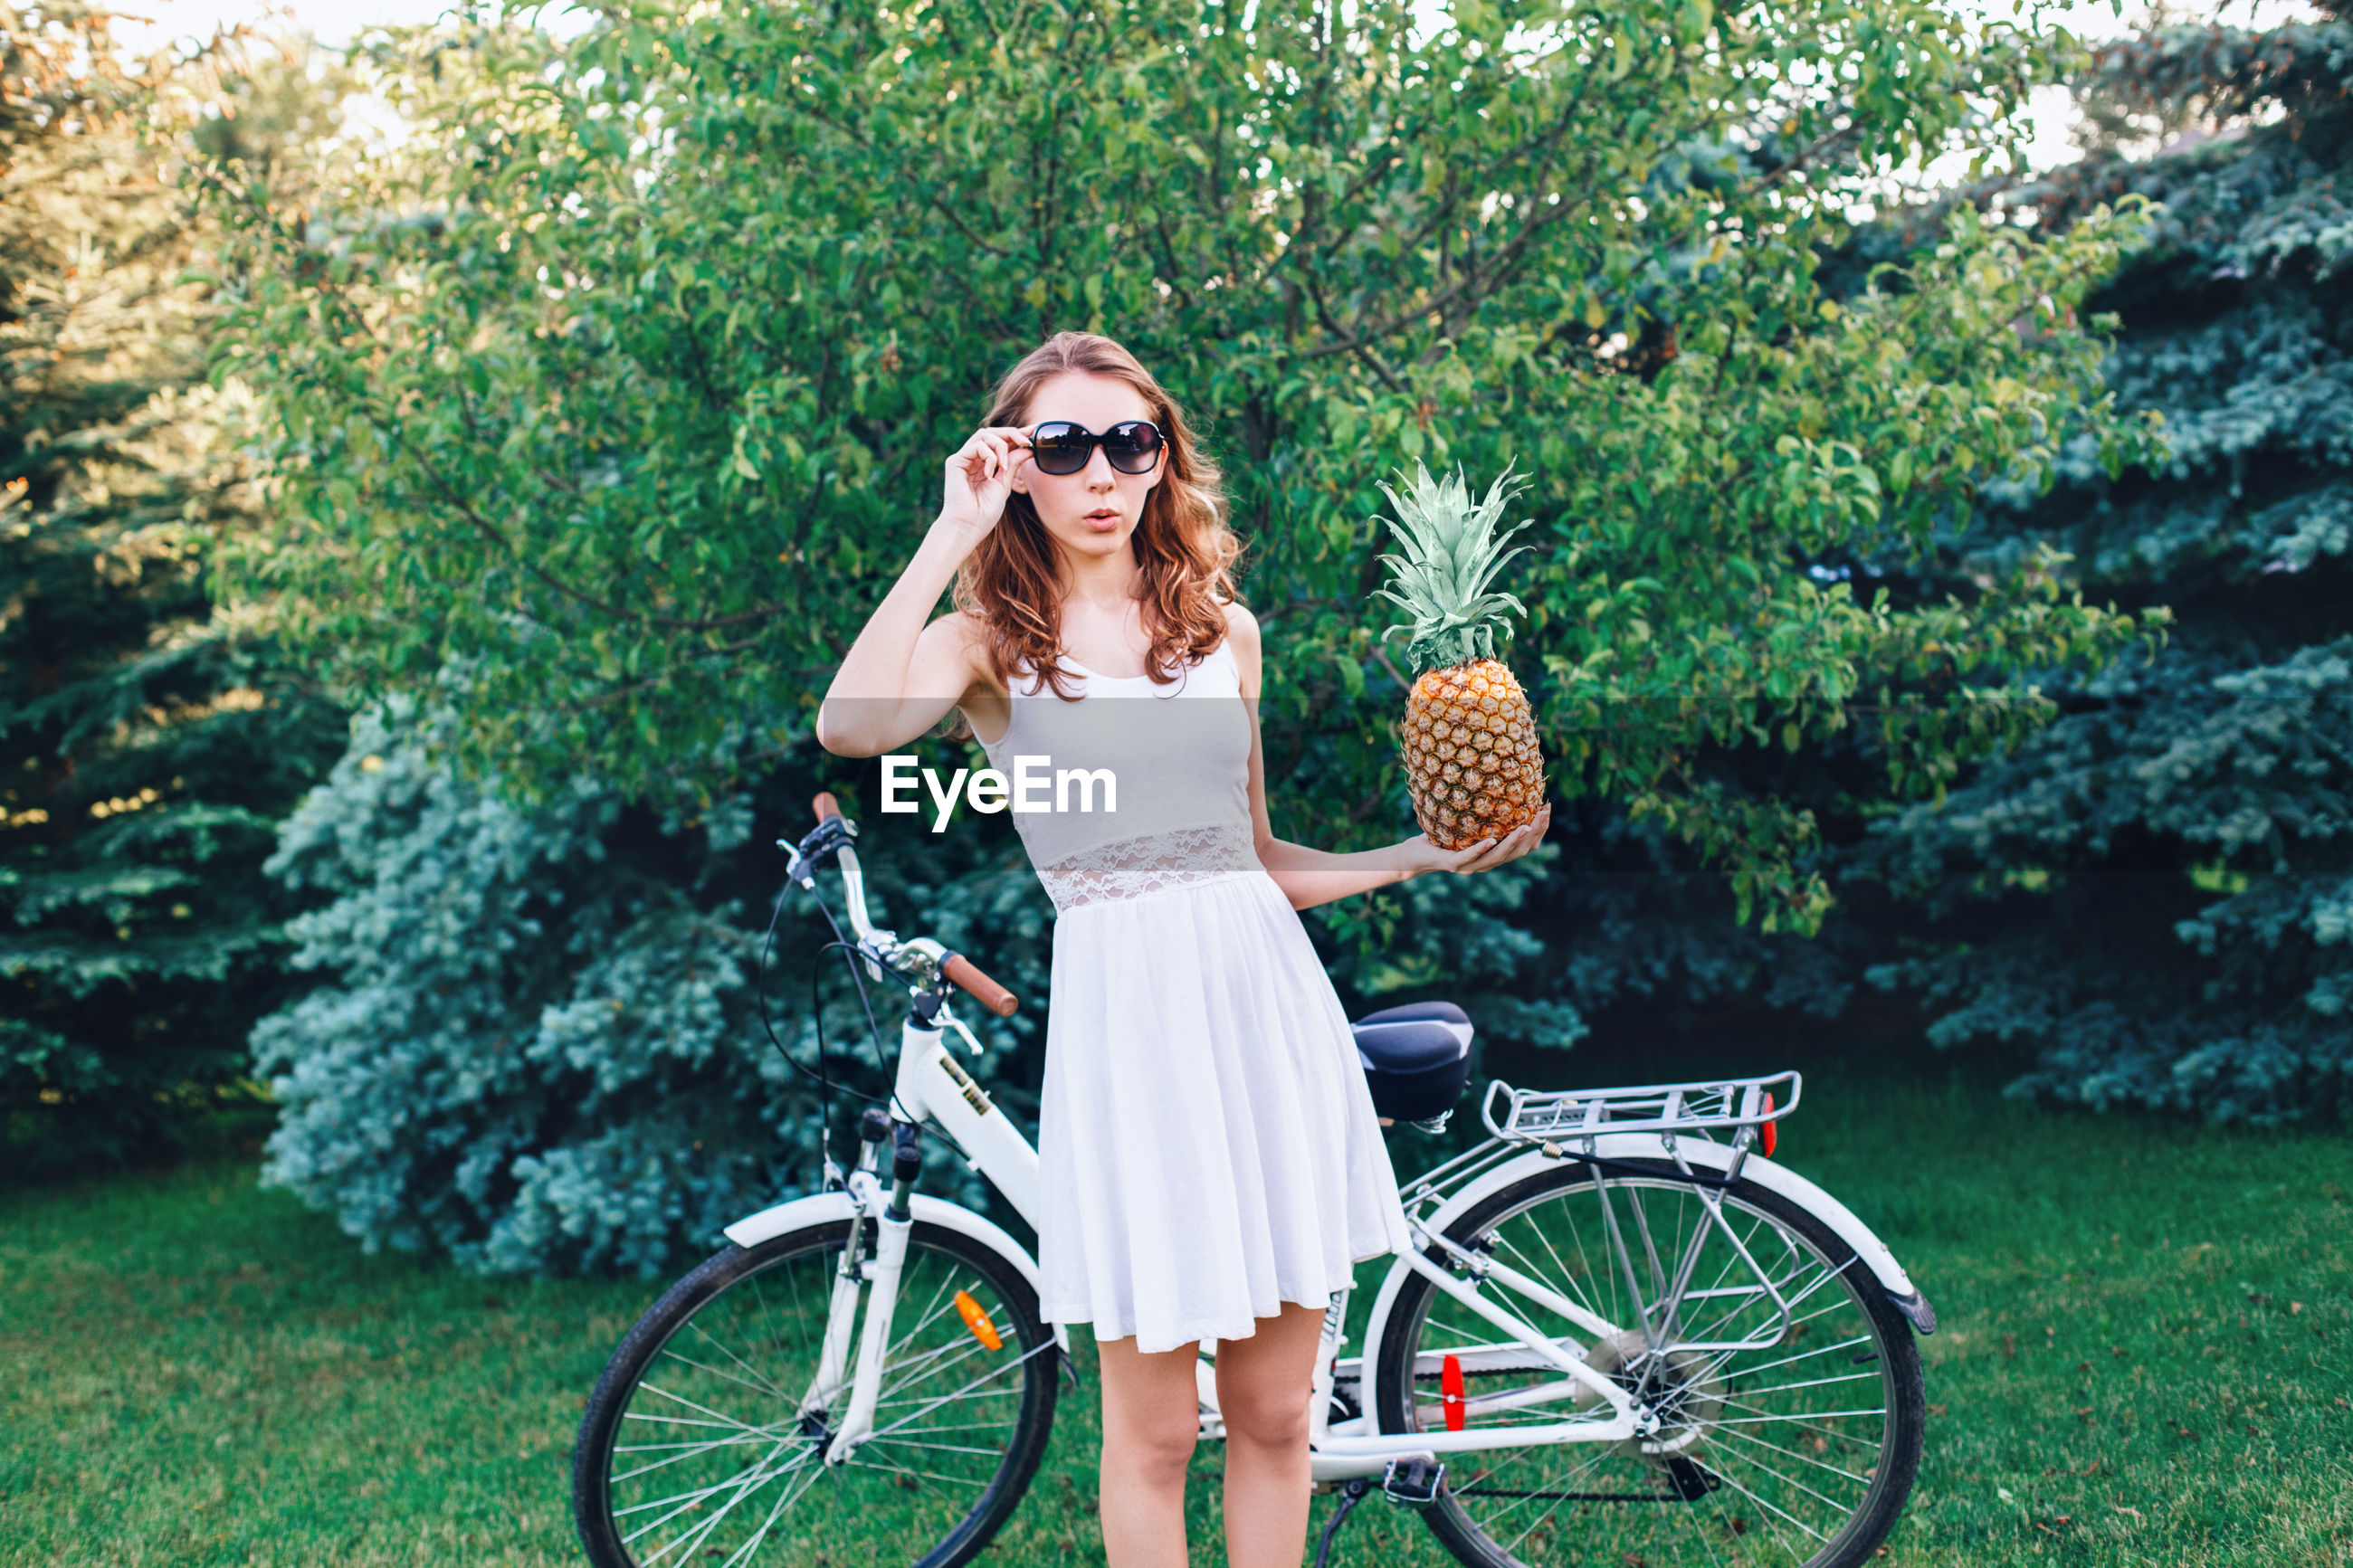 Portrait of young woman holding pineapple while standing on grass by bicycle against trees